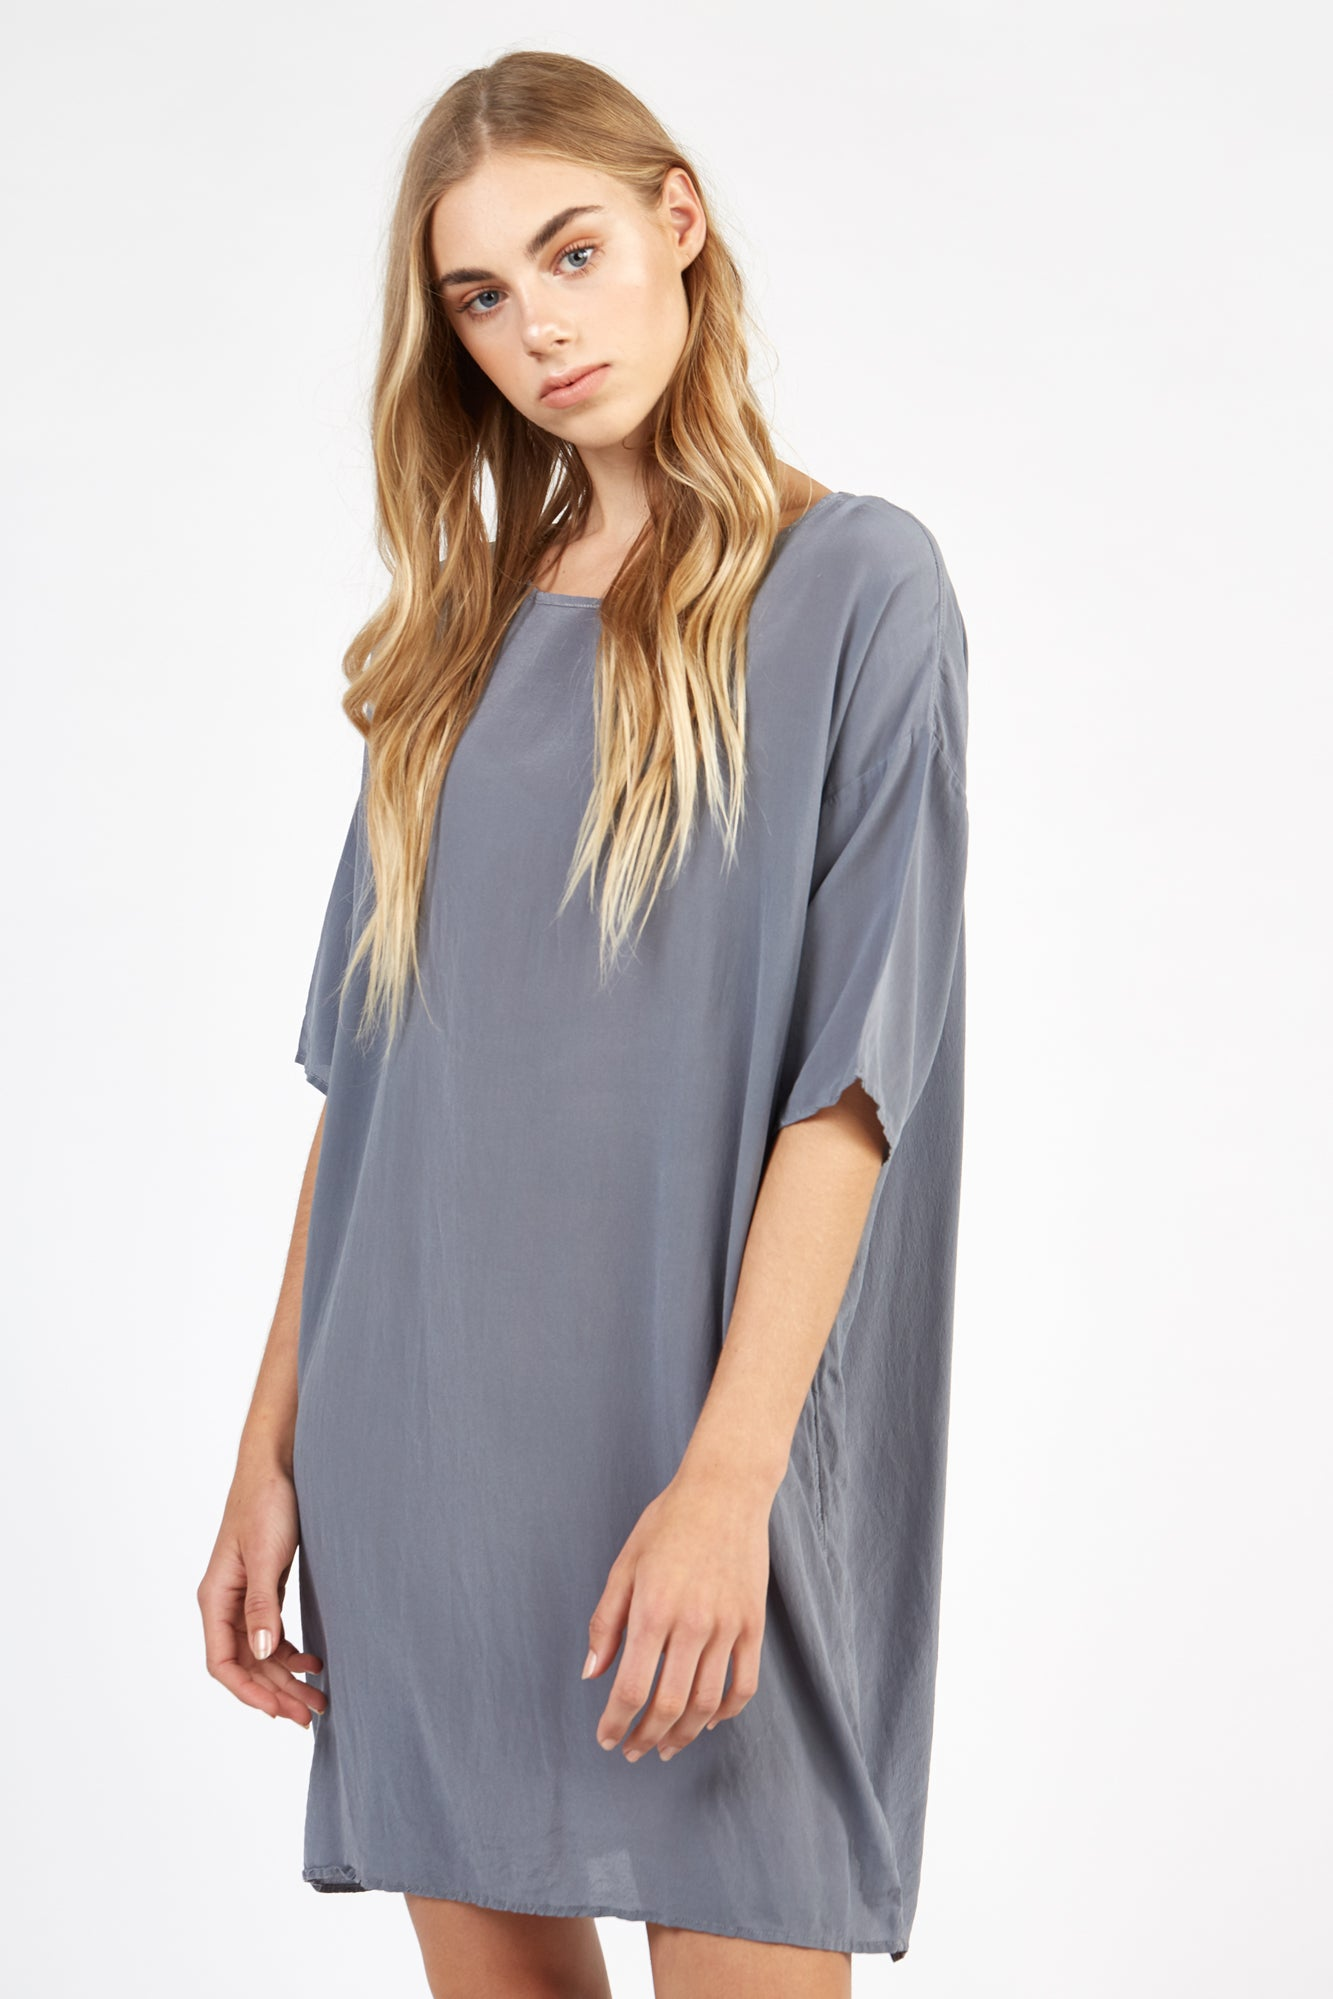 BENIC DRESS - FOSSIL GREY